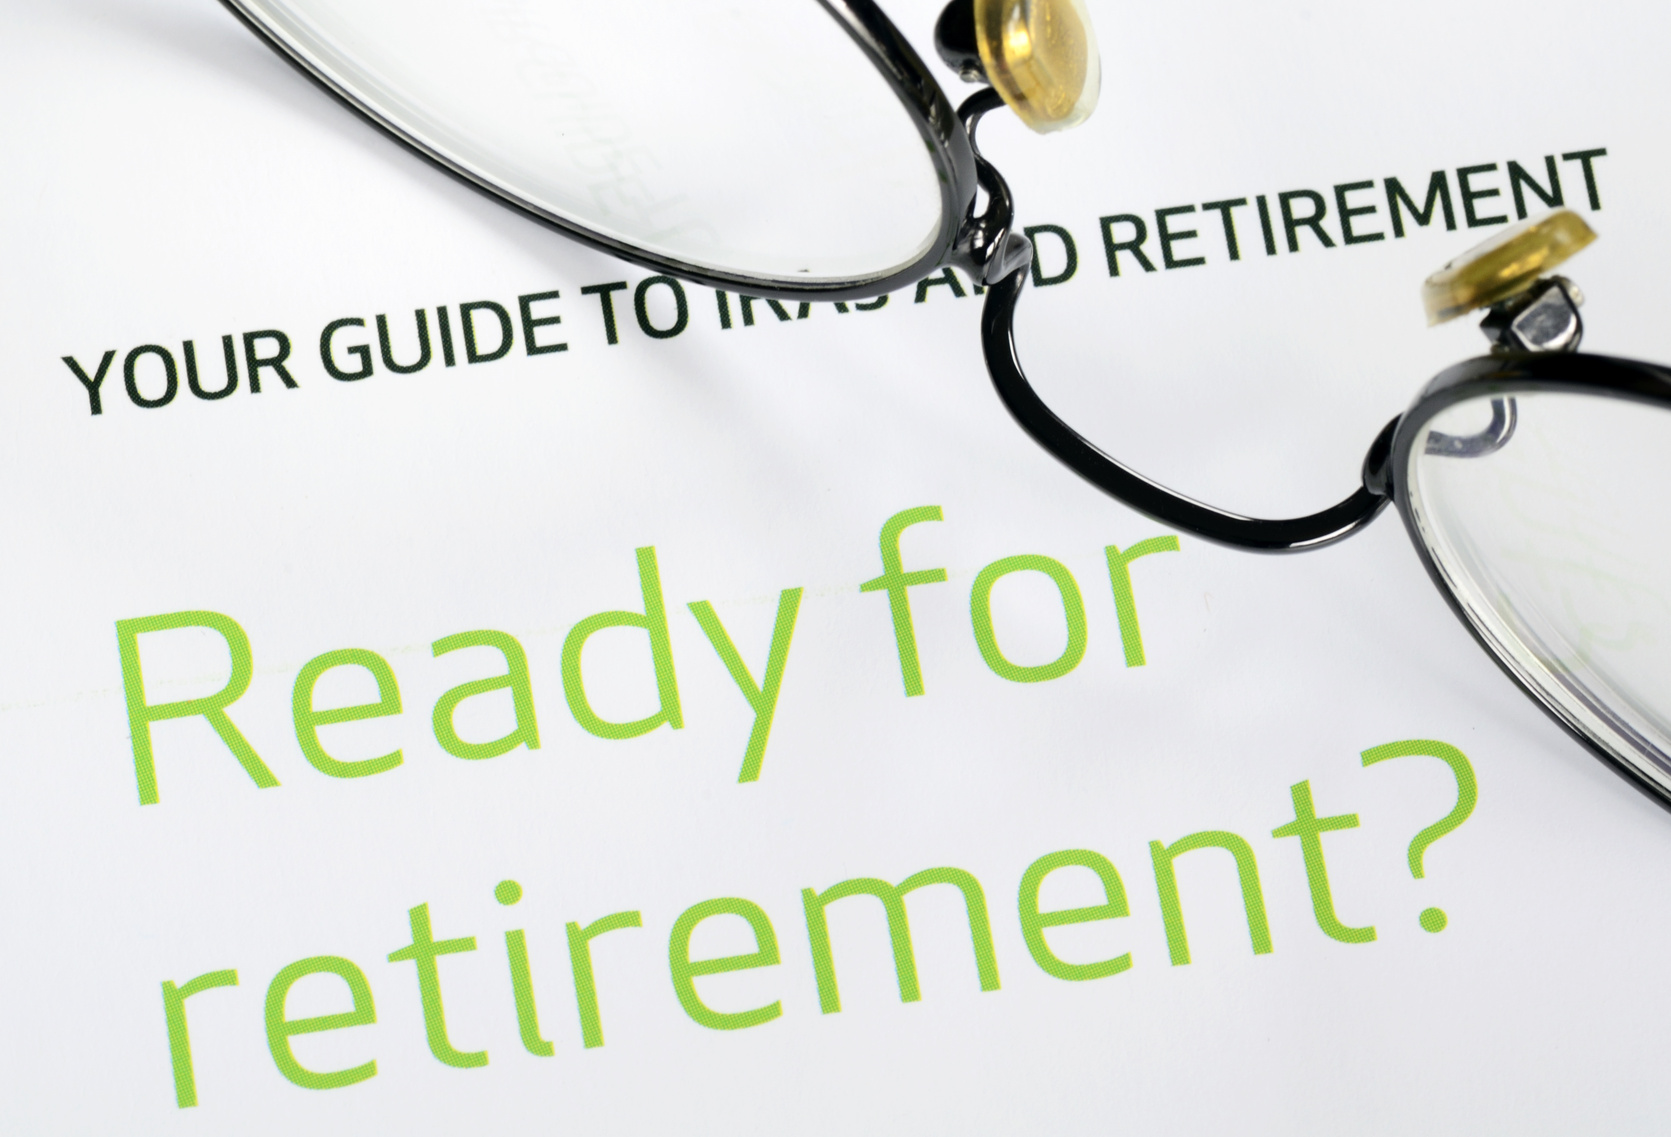 Retirement 2015: Rule Changes for the Year Ahead